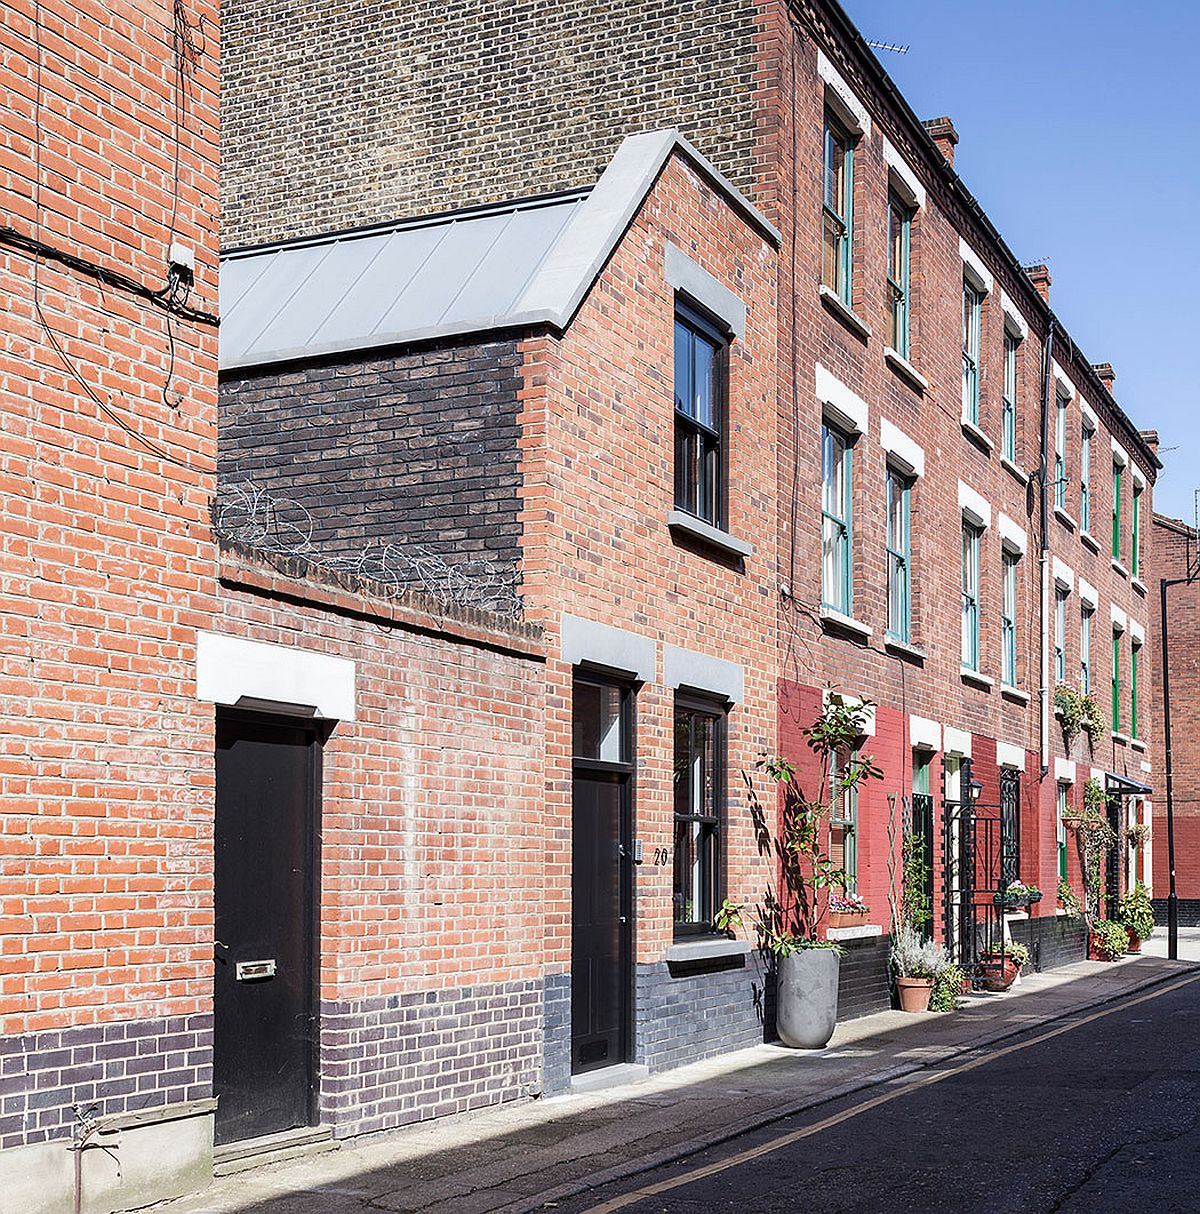 Classic brick exterior of the revamped home in London Congested Upholsterer's Workshop in London Altered into Multi Level Modern Home